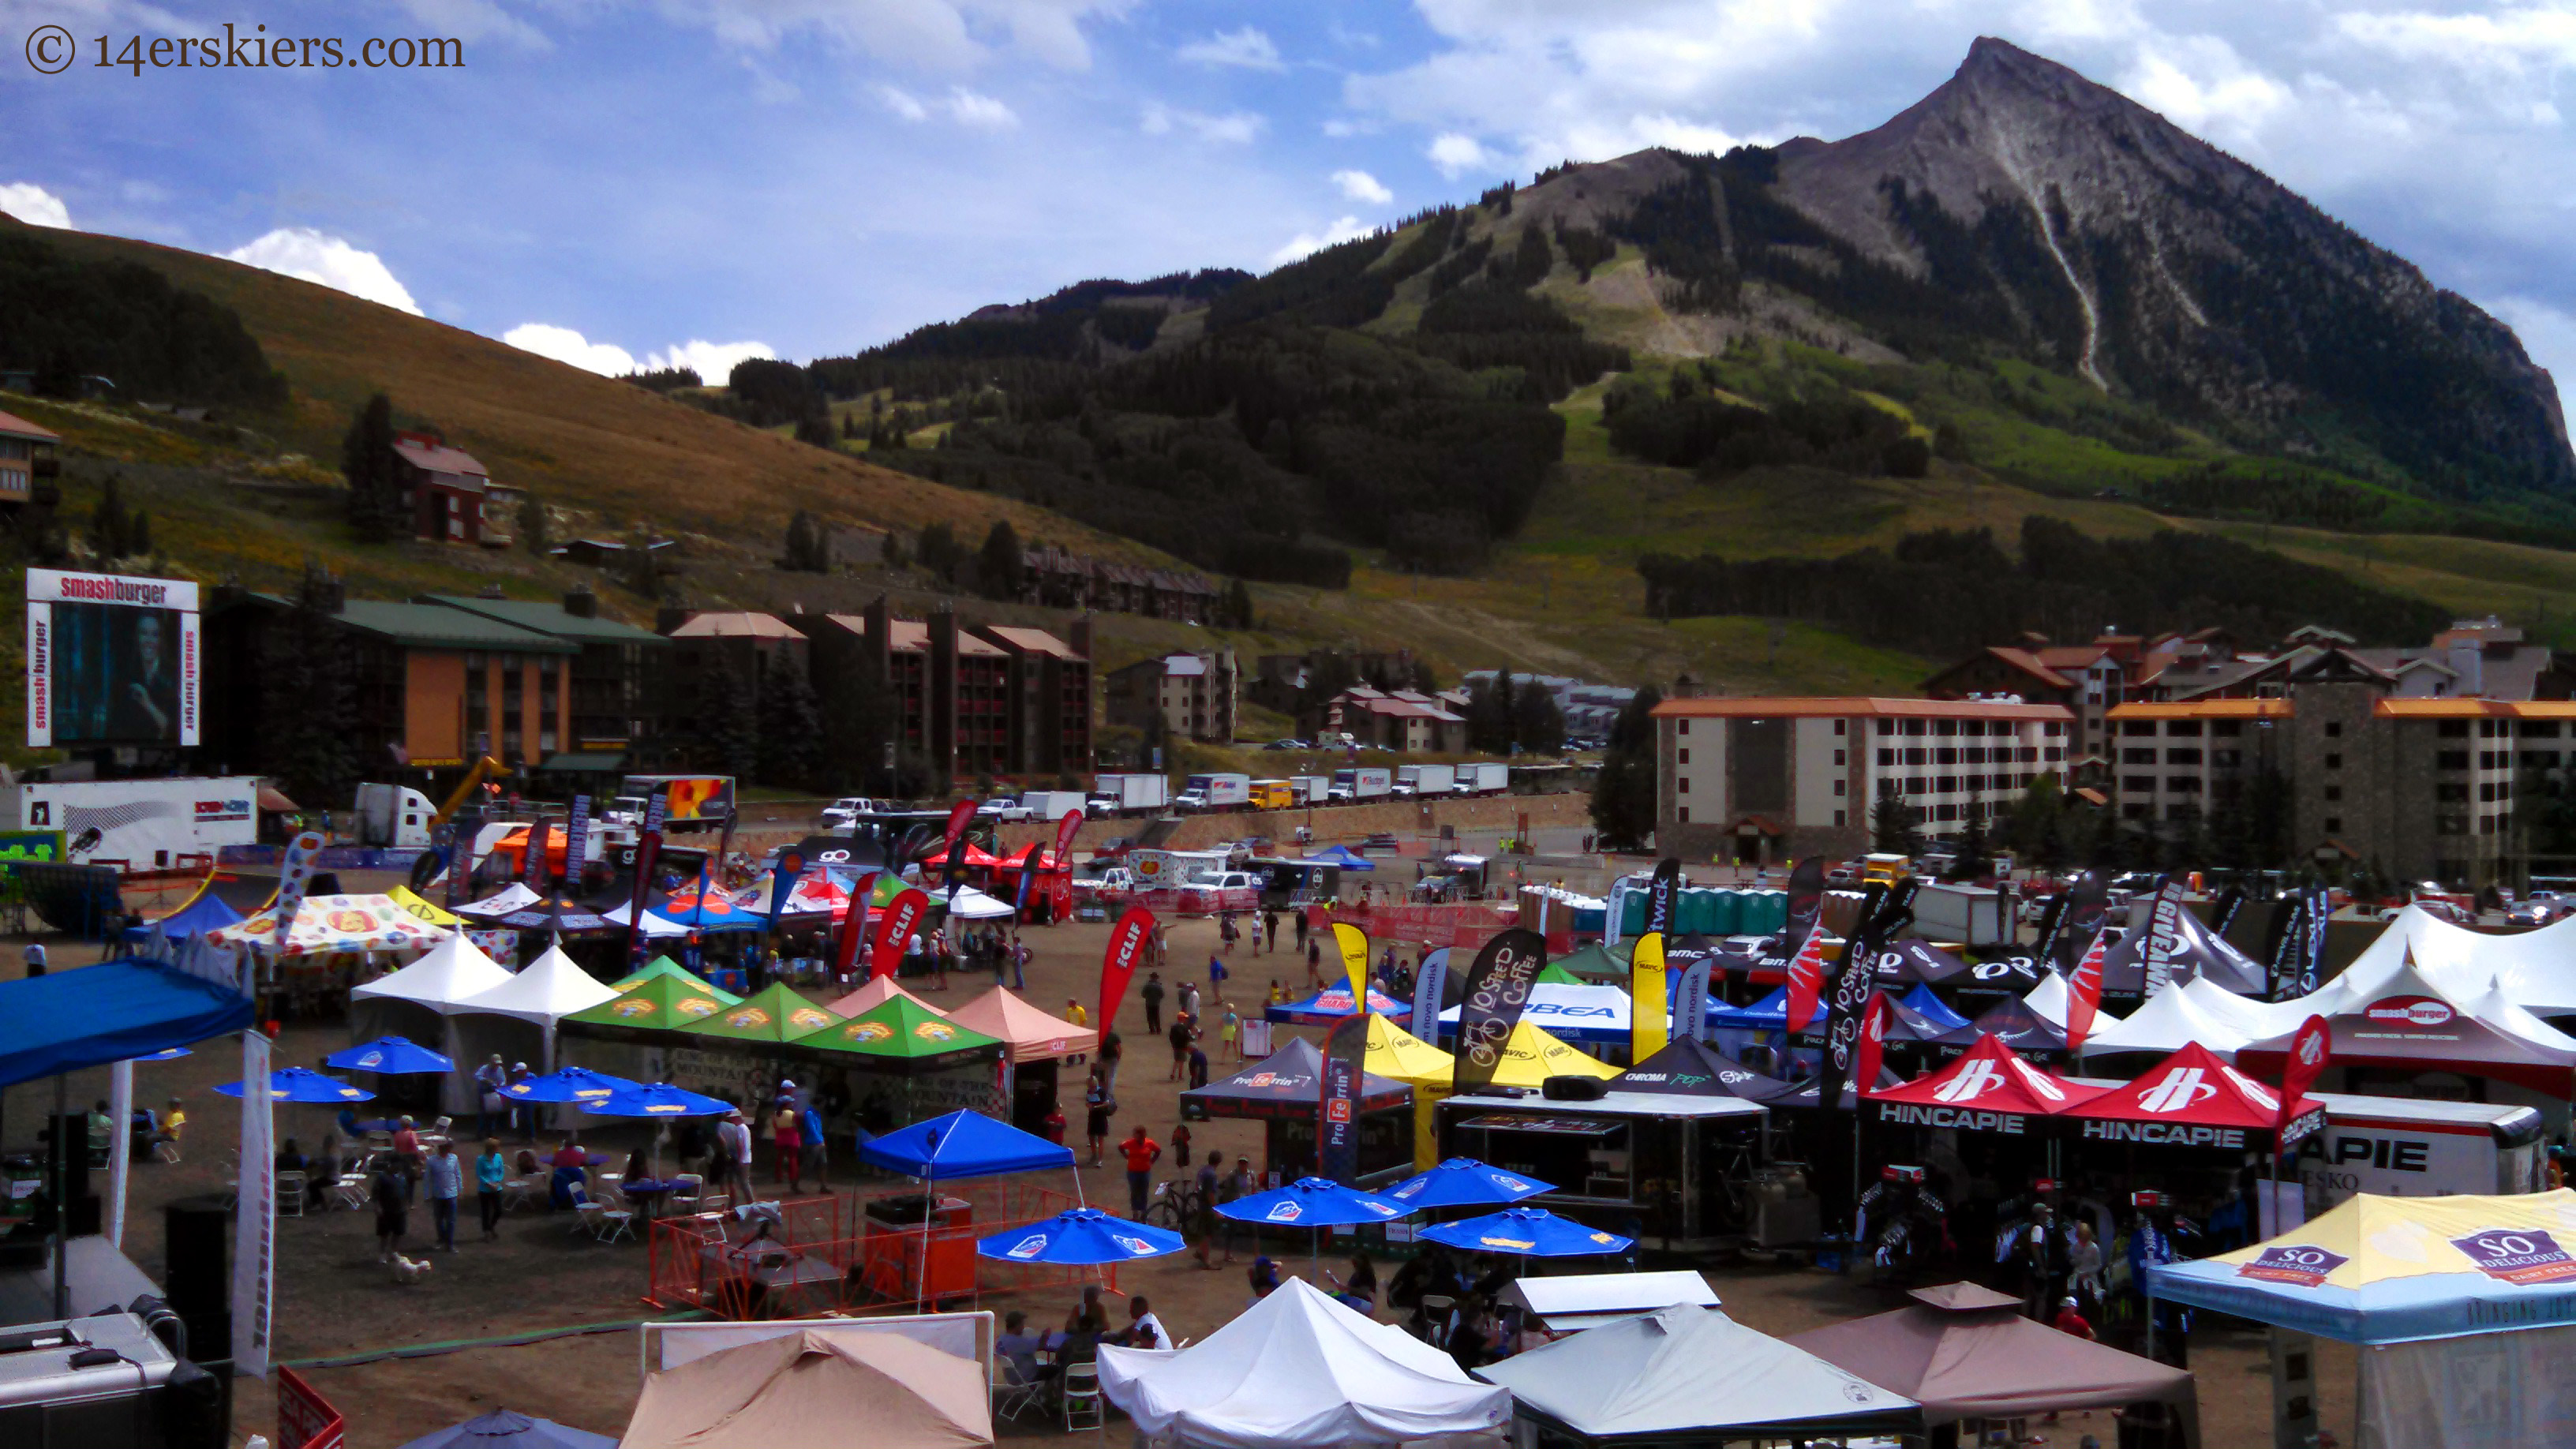 pro challenge in Crested Butte